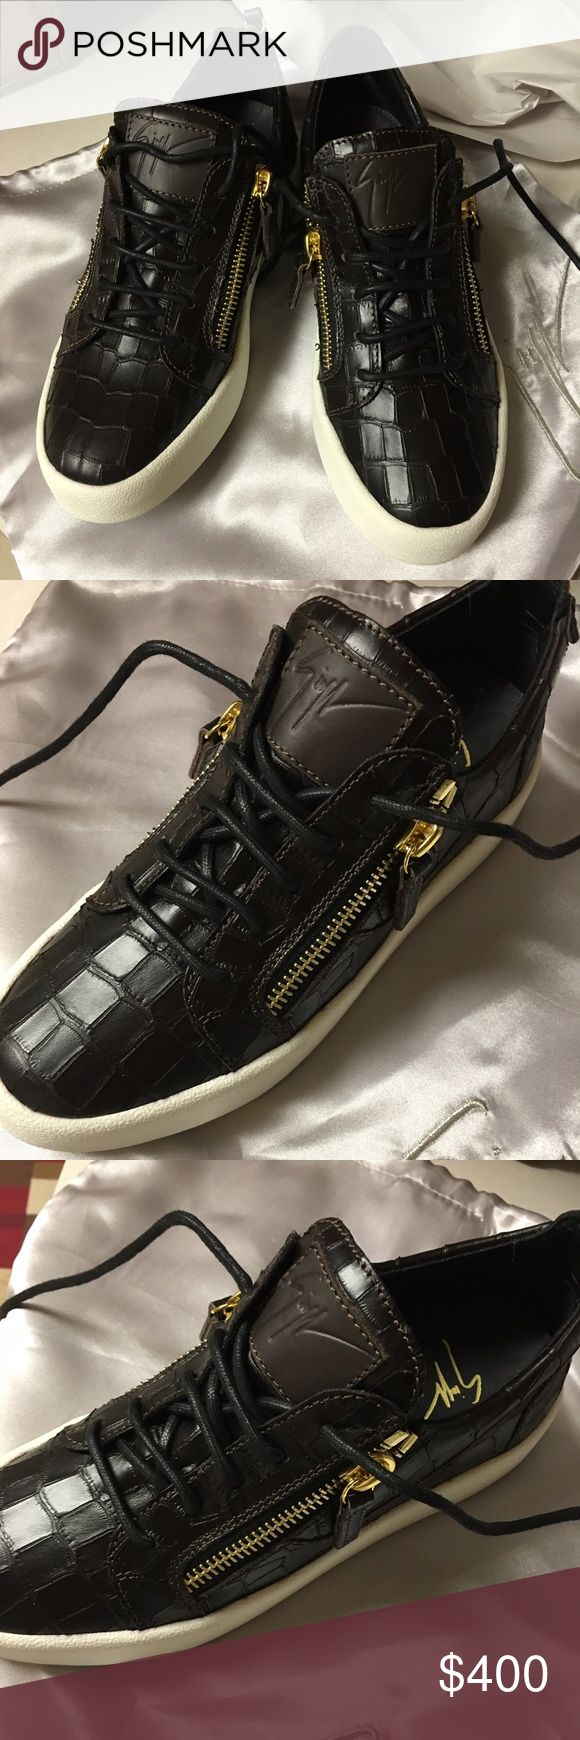 giuseppe zanotti men's sneakers 39.5 brown crocodile skin with two side zippers. Never worn! Selling for 400 Giuseppe Zanotti Shoes Sneakers